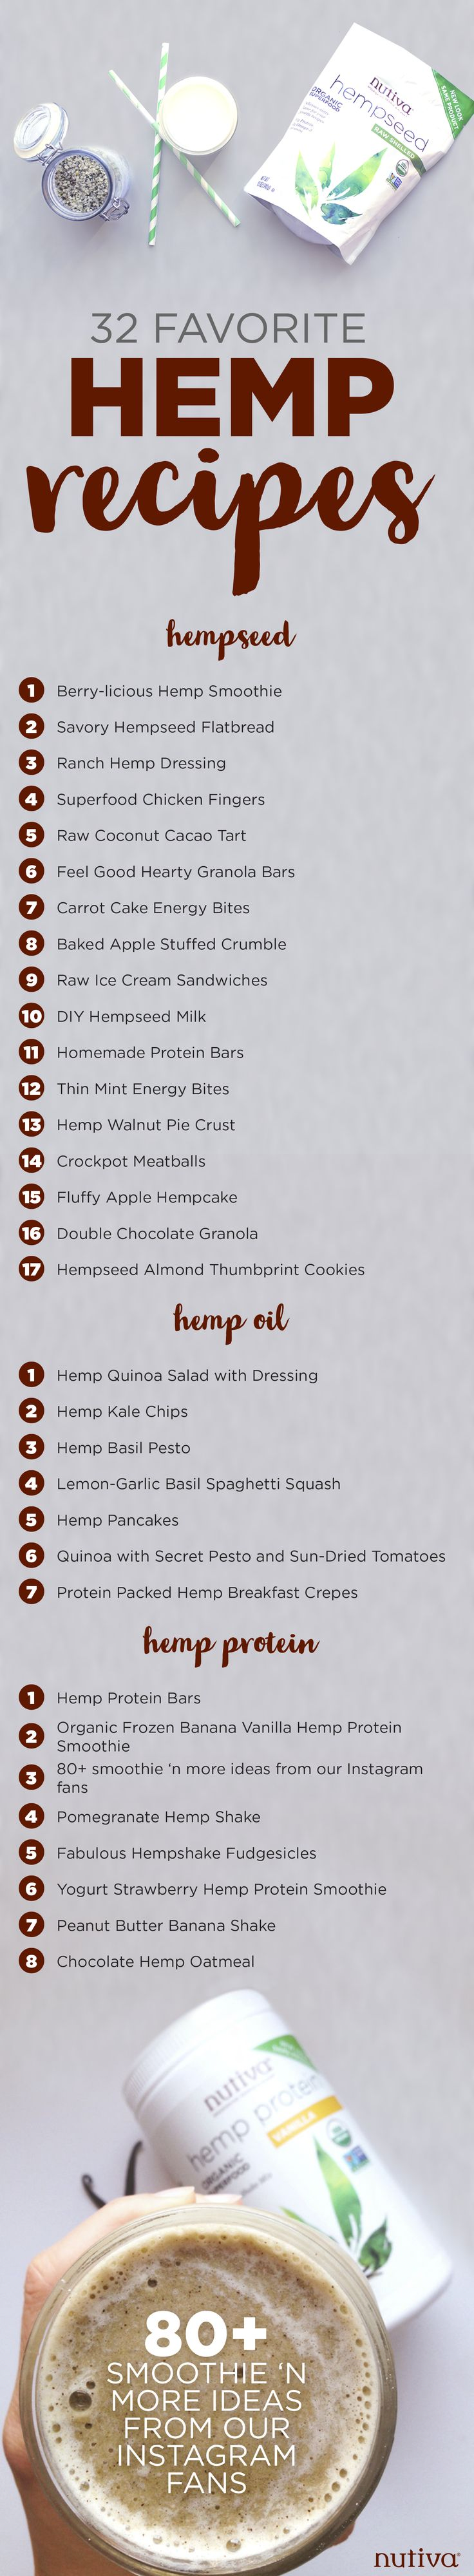 32 Favorite Hemp Recipes kitchen.nutiva.com